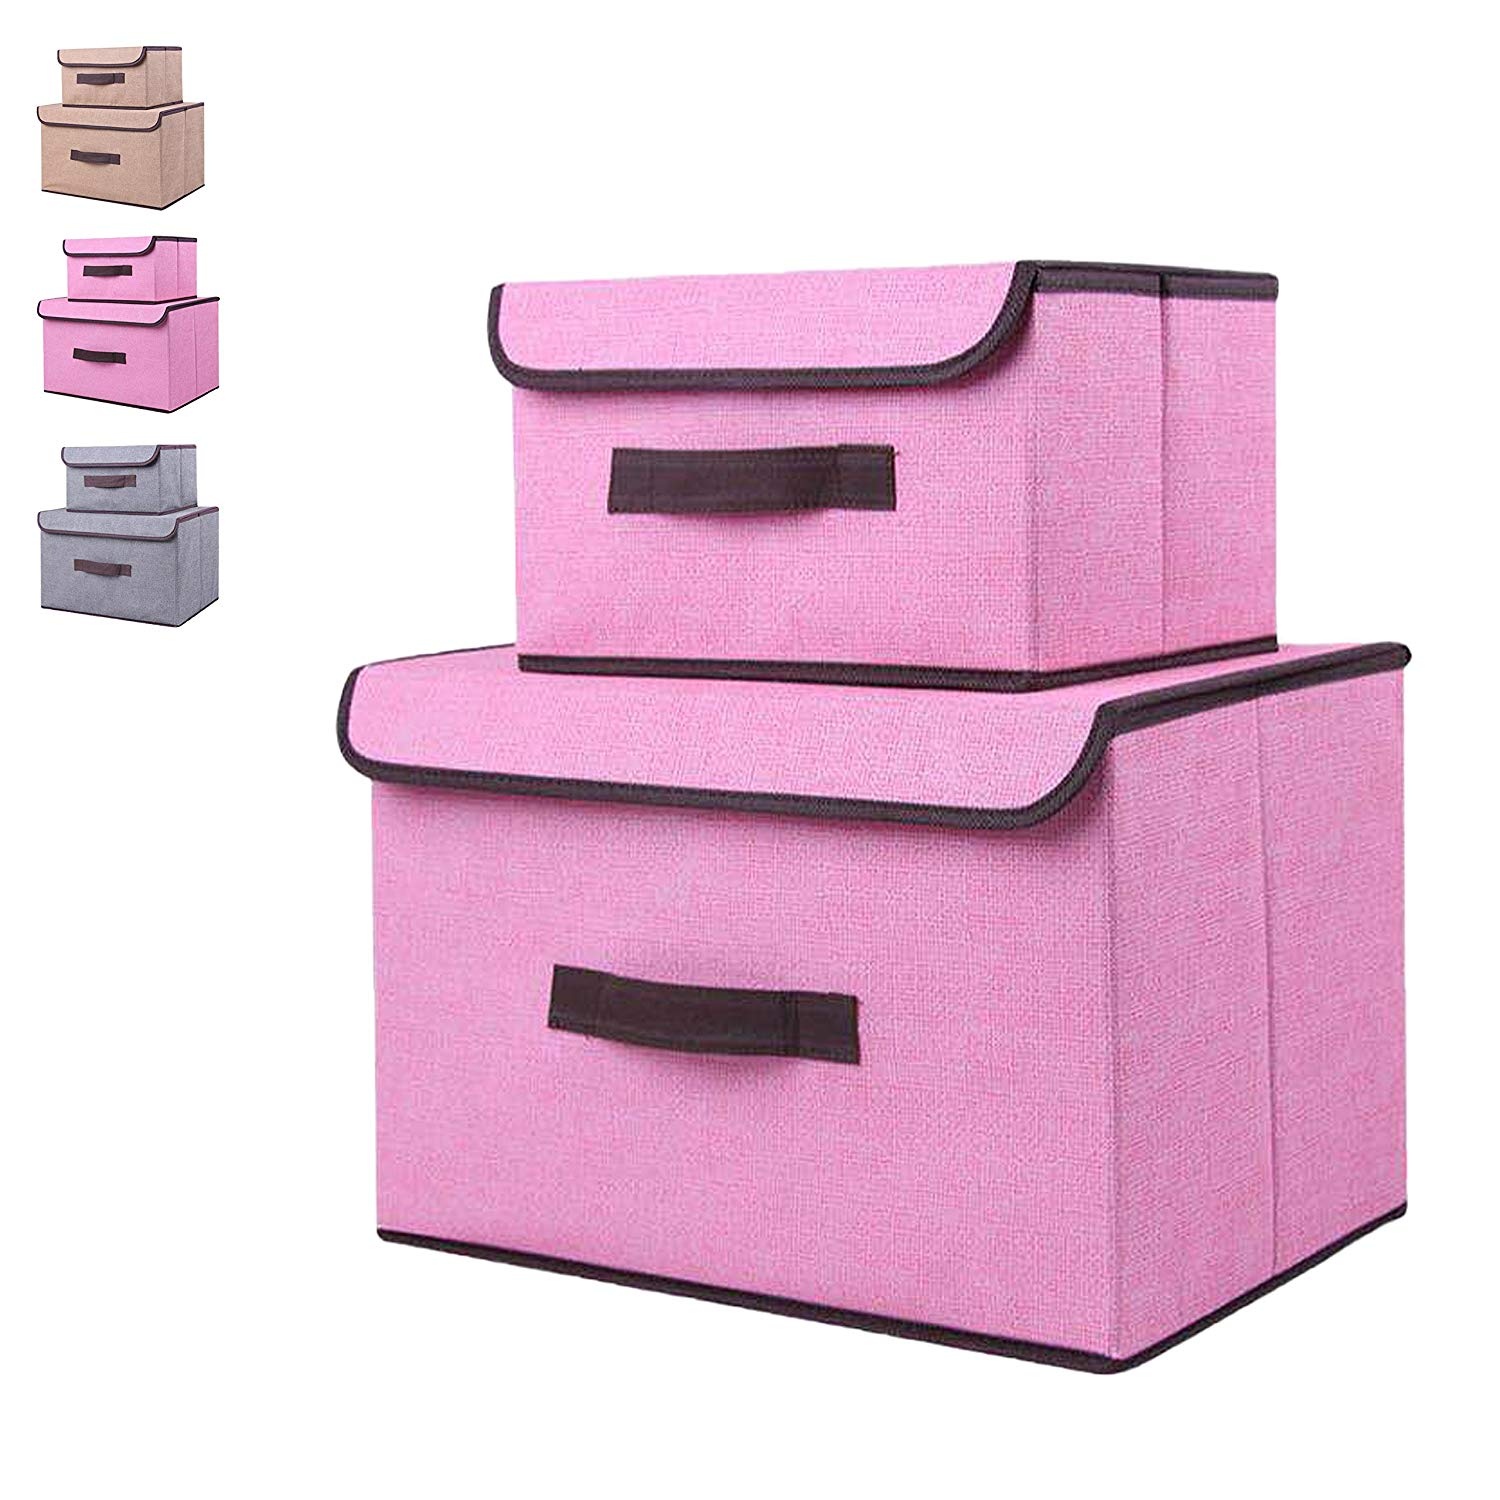 Storage bin with lid, storage bins with lids storage box with lid (2 pack),set of two foldable storage bins, collapsible , storage cubes bins baskets, bedroom toys clothes office kid room non-woven